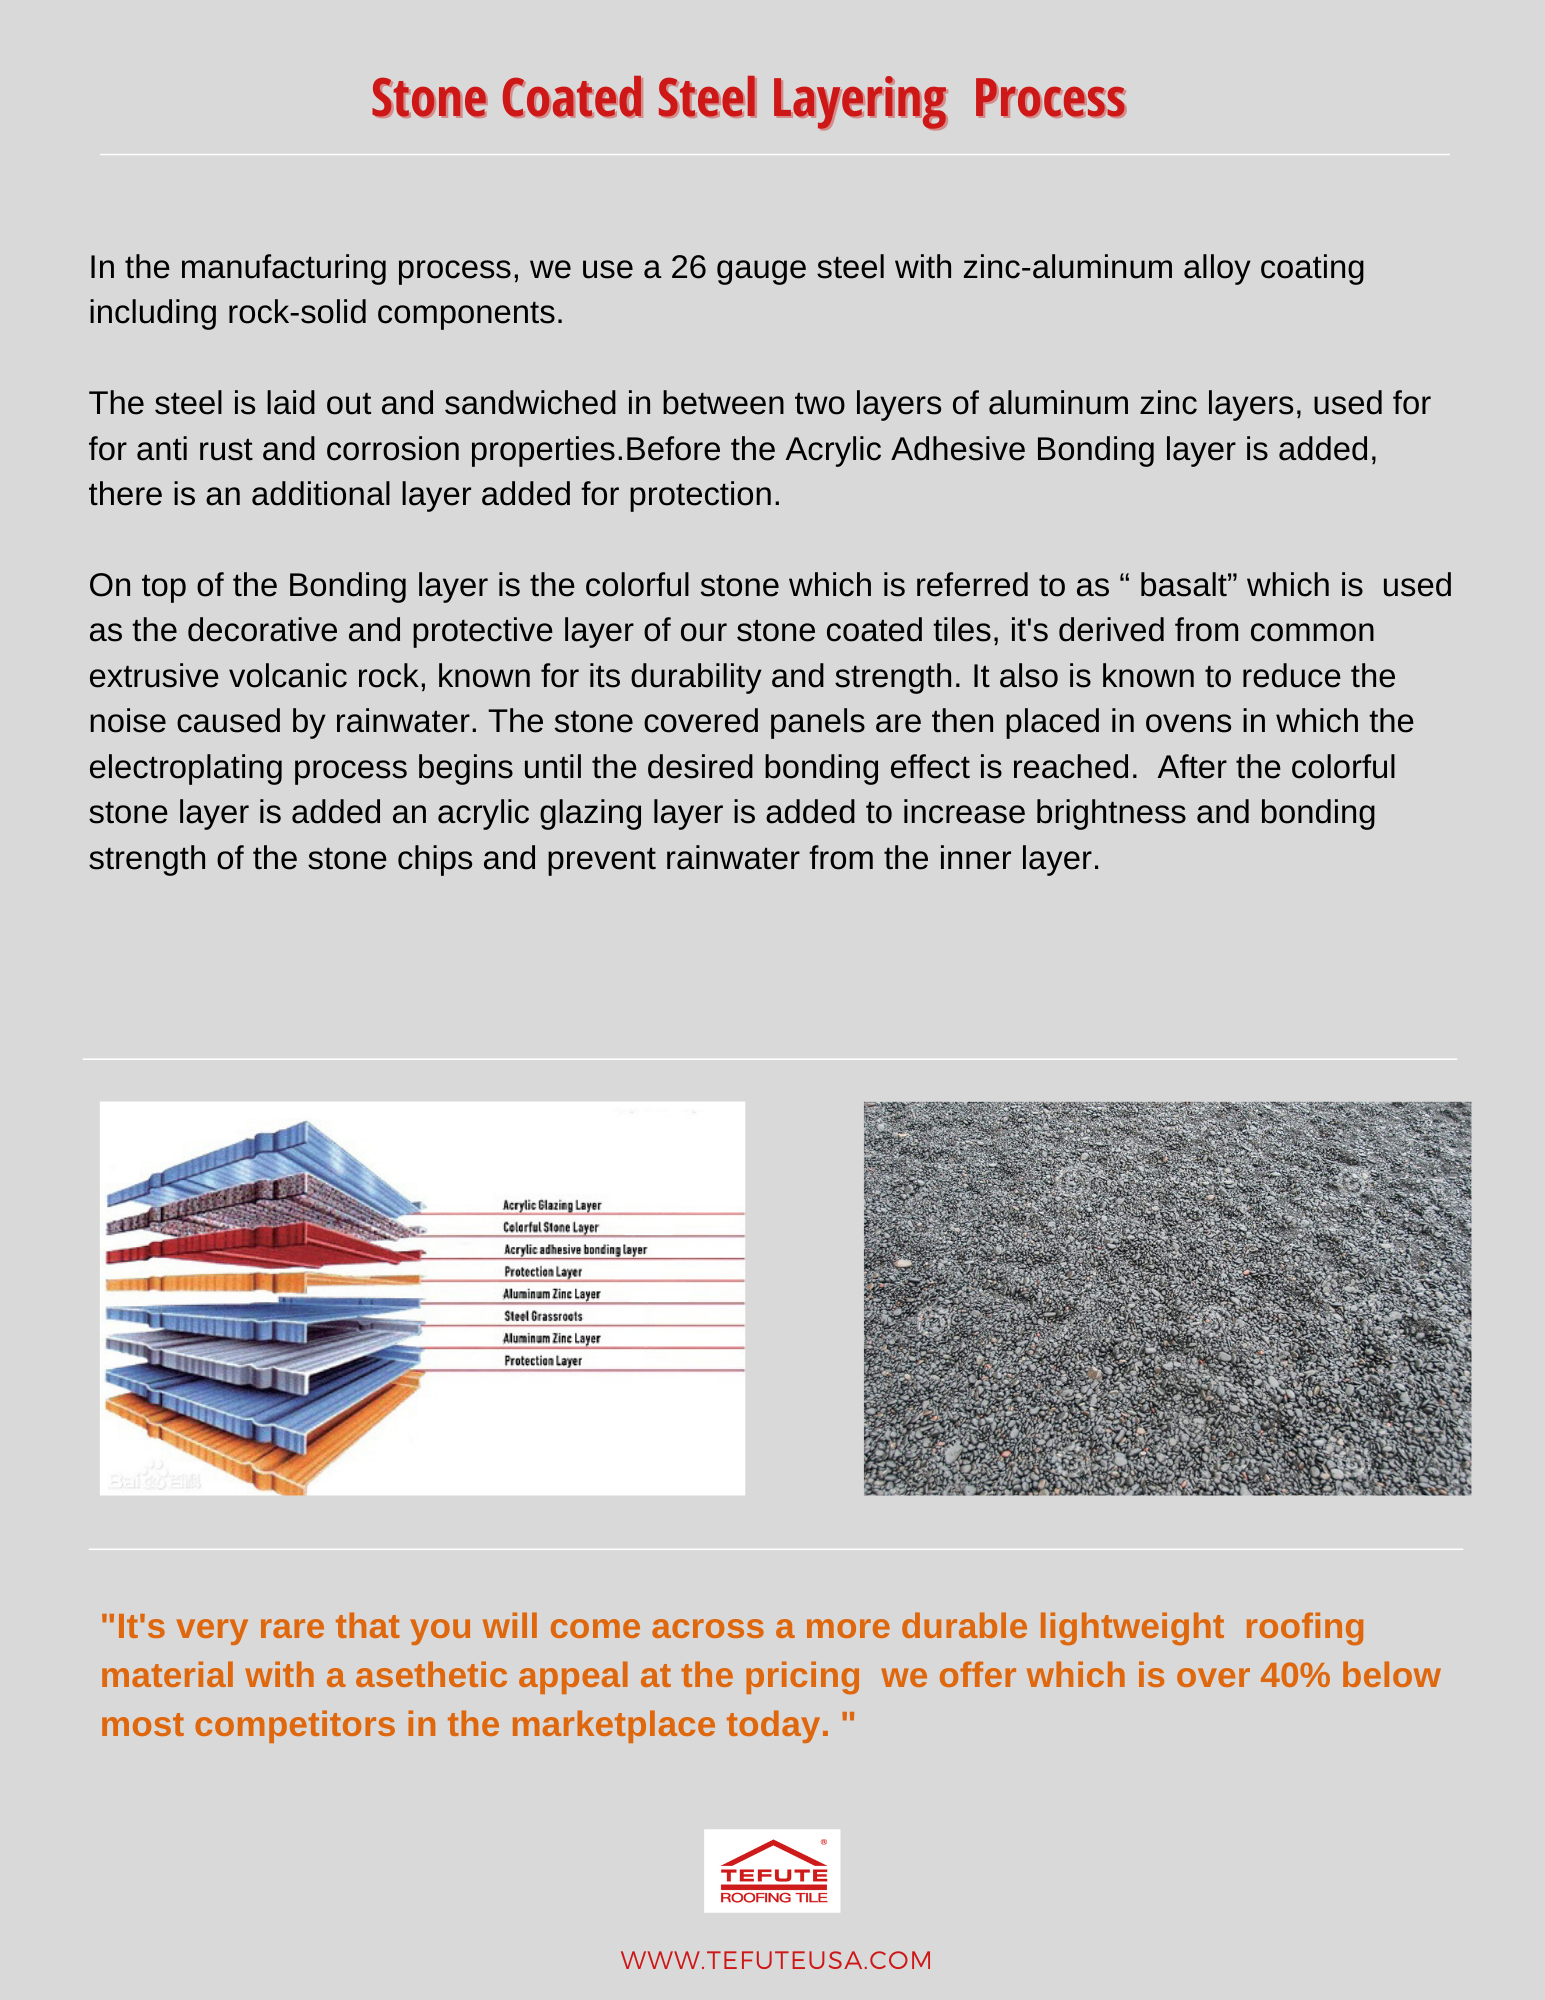 Stone Coated Steel Layering Process In 2020 Building Materials Manufactured Stone Acrylic Adhesive